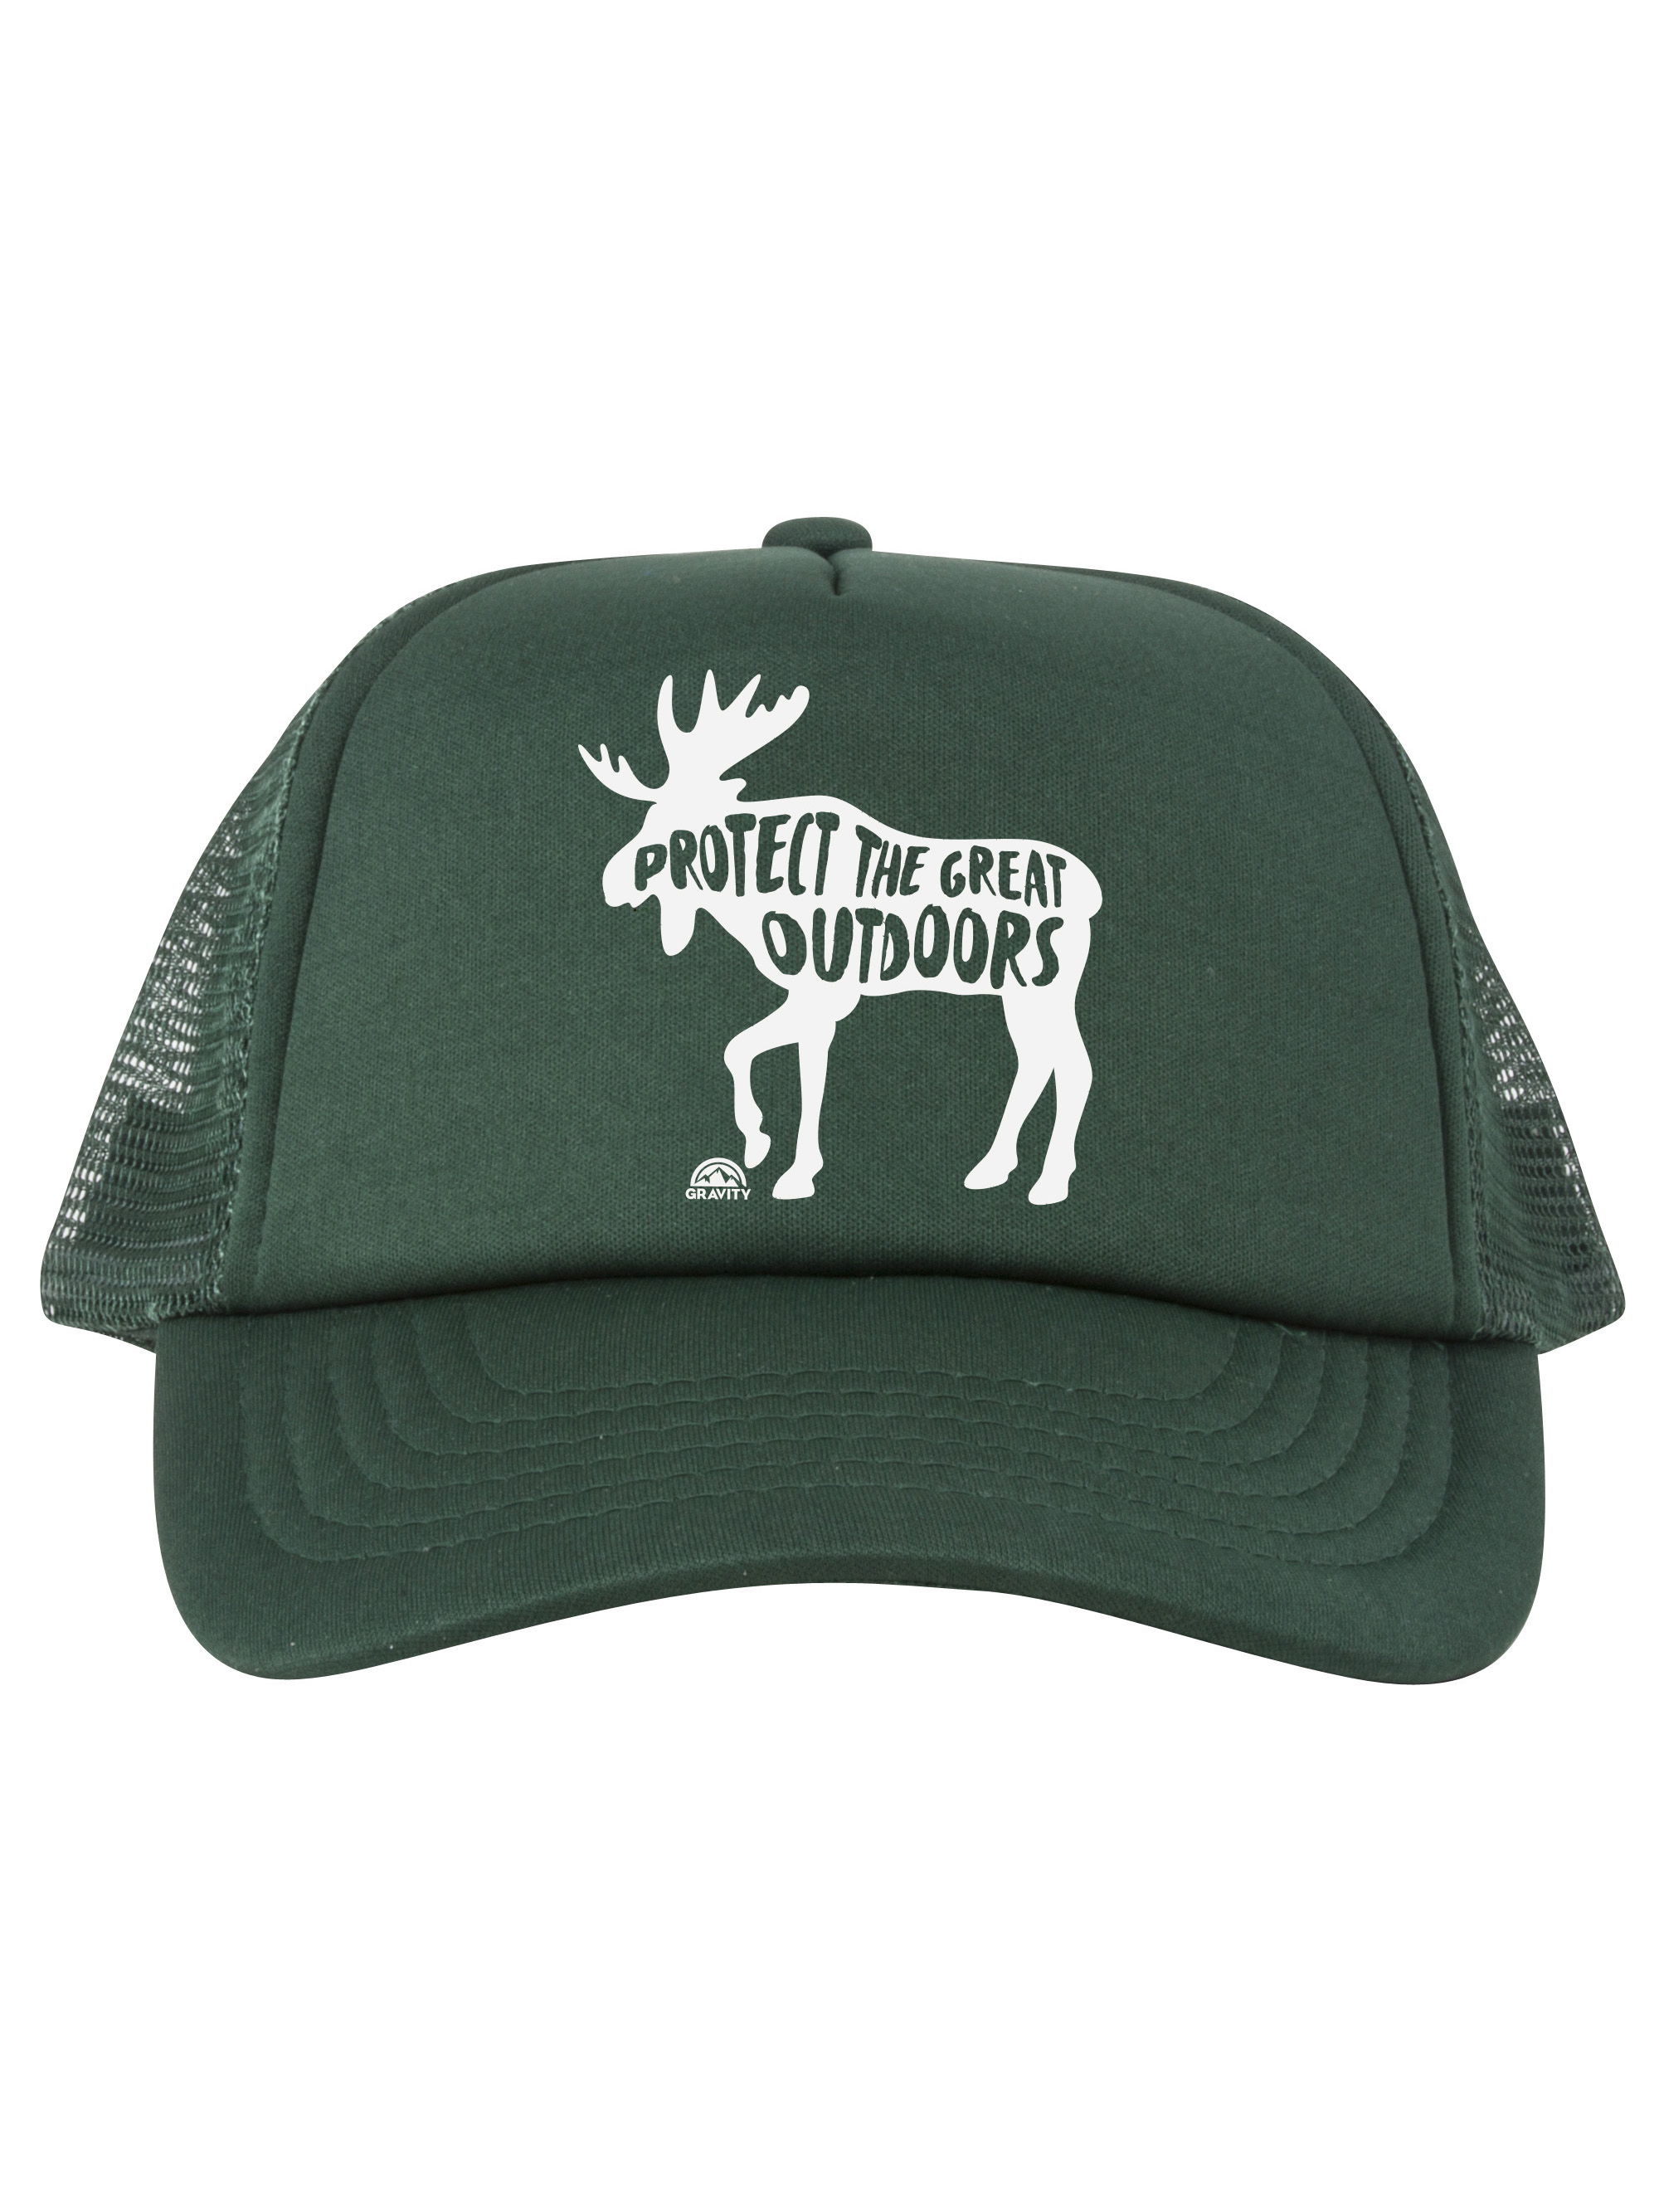 120c944b33f1d Protect the Great Outdoors Moose Trucker Hat - Black - Neon Orange - image  1 of zoomed image